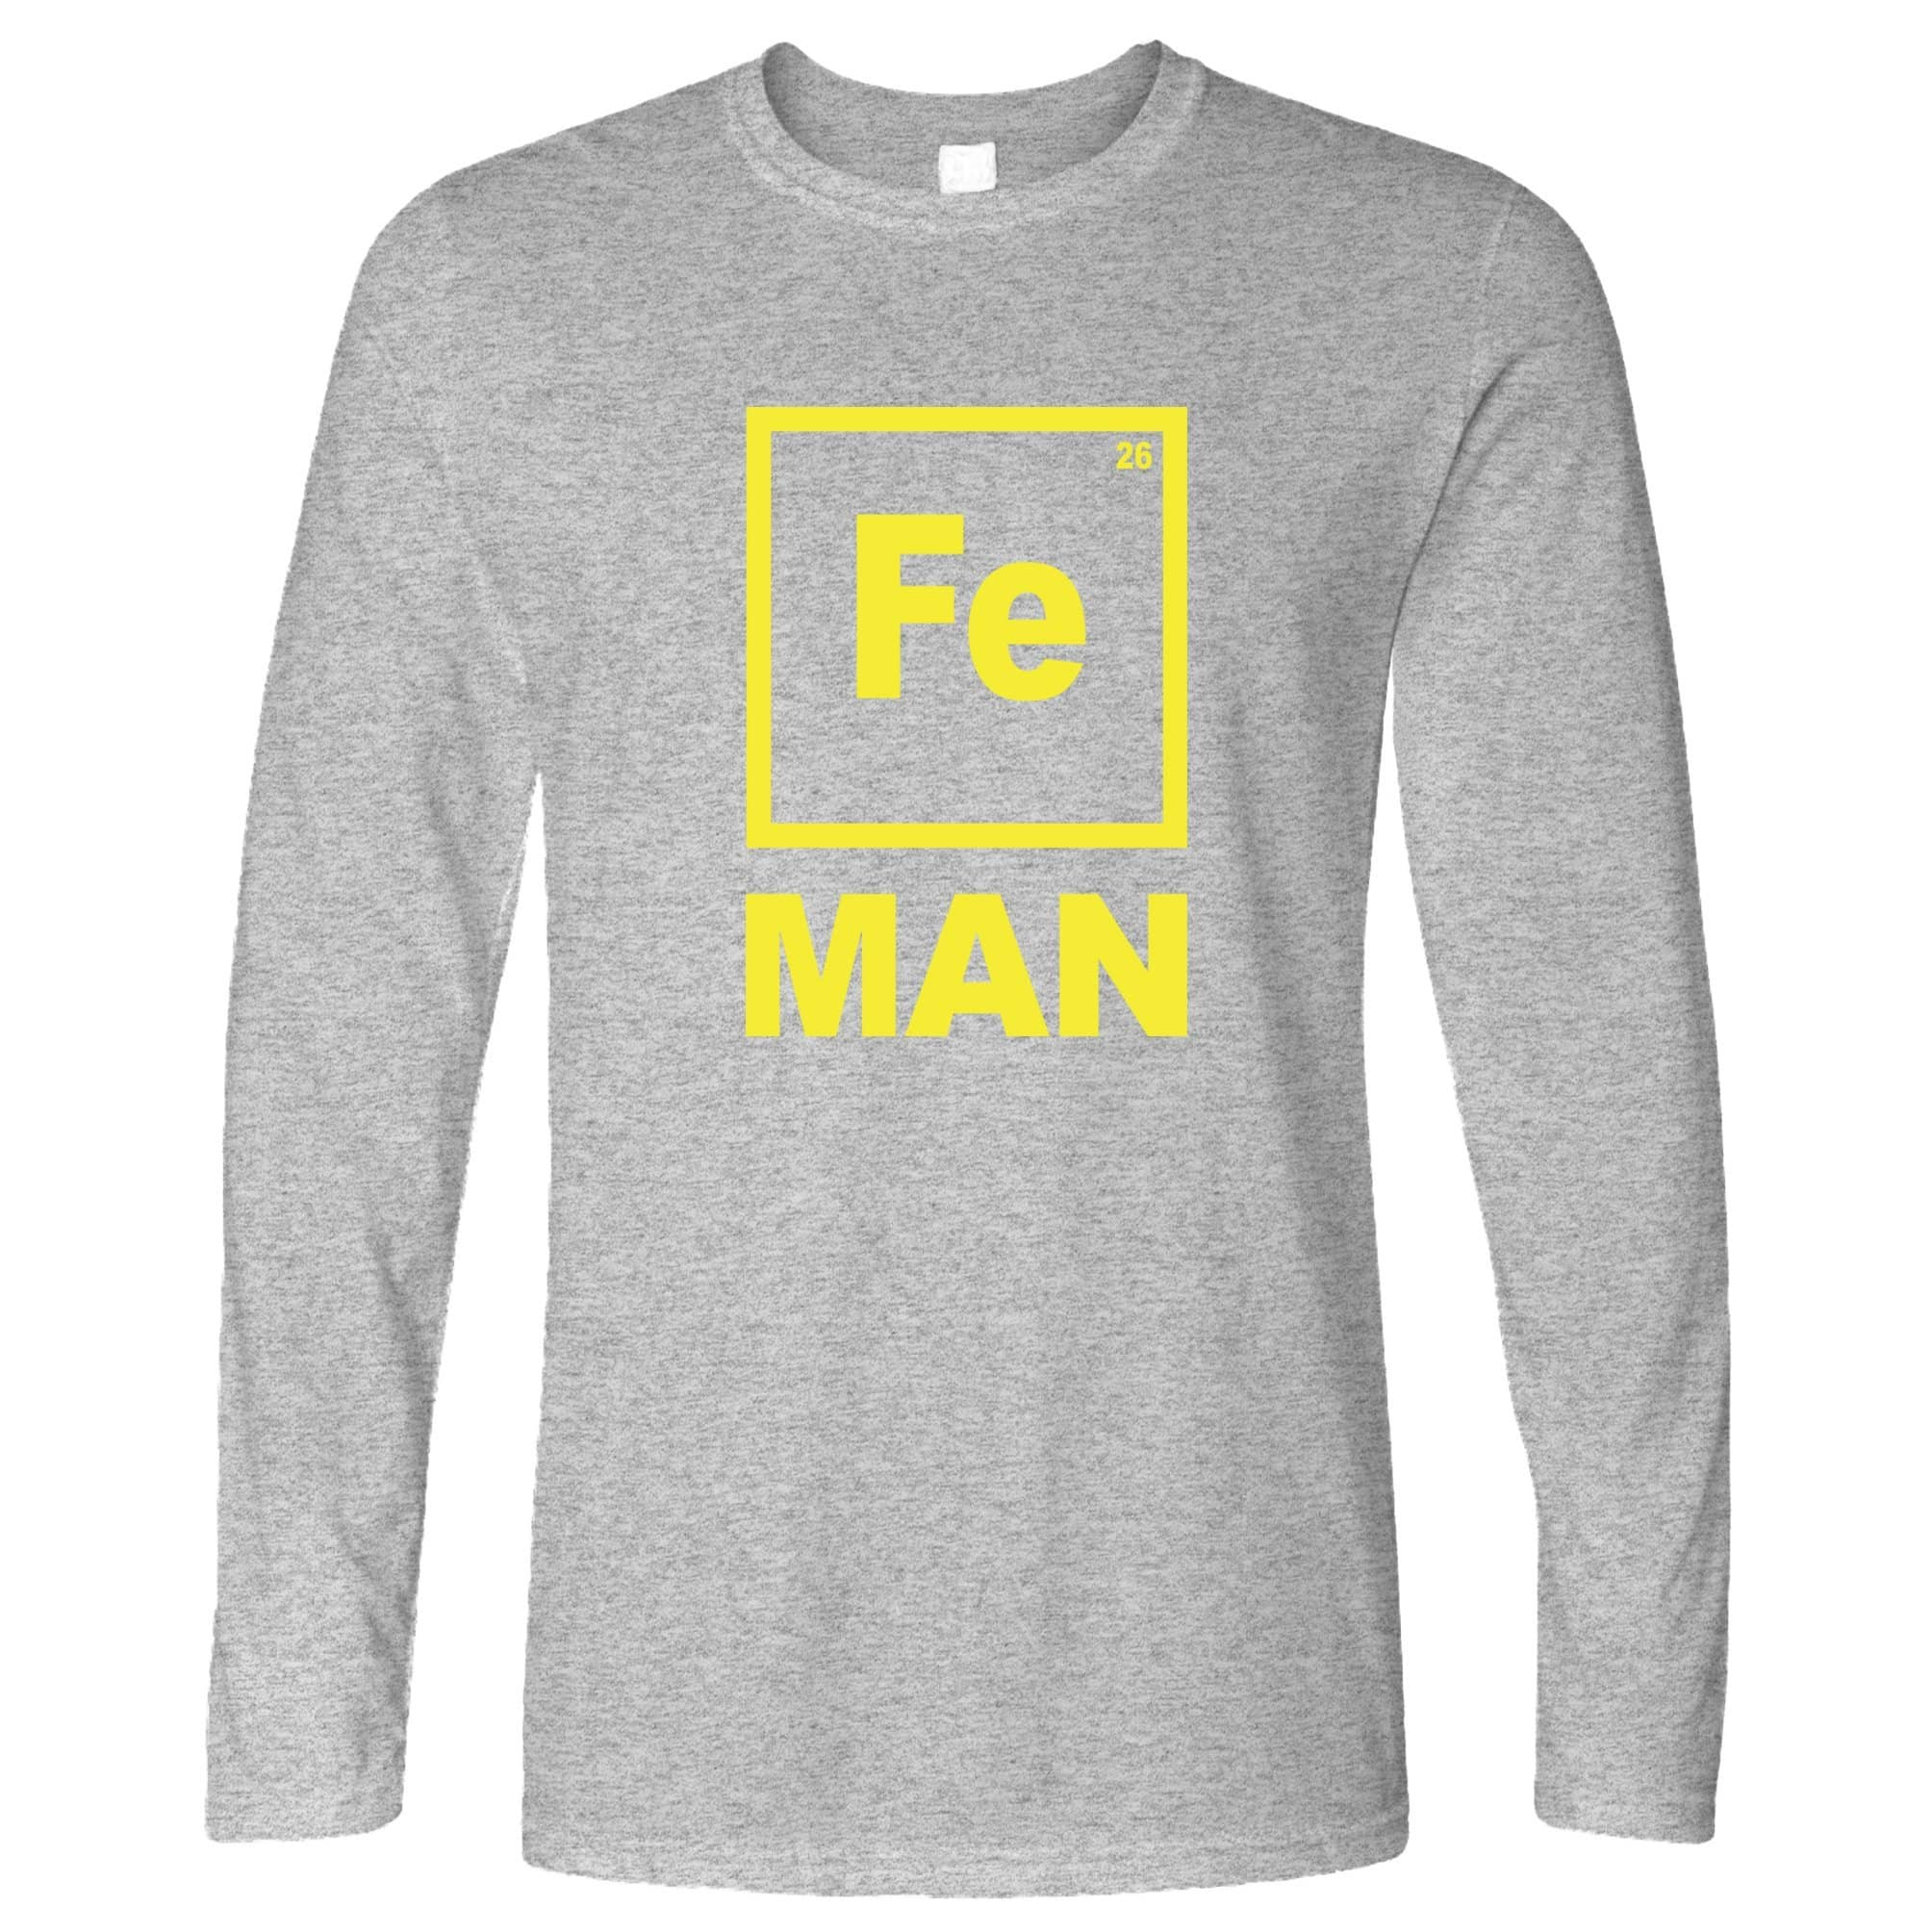 Novelty Nerdy Long Sleeve Fe Man Iron Chemical Symbol T-Shirt